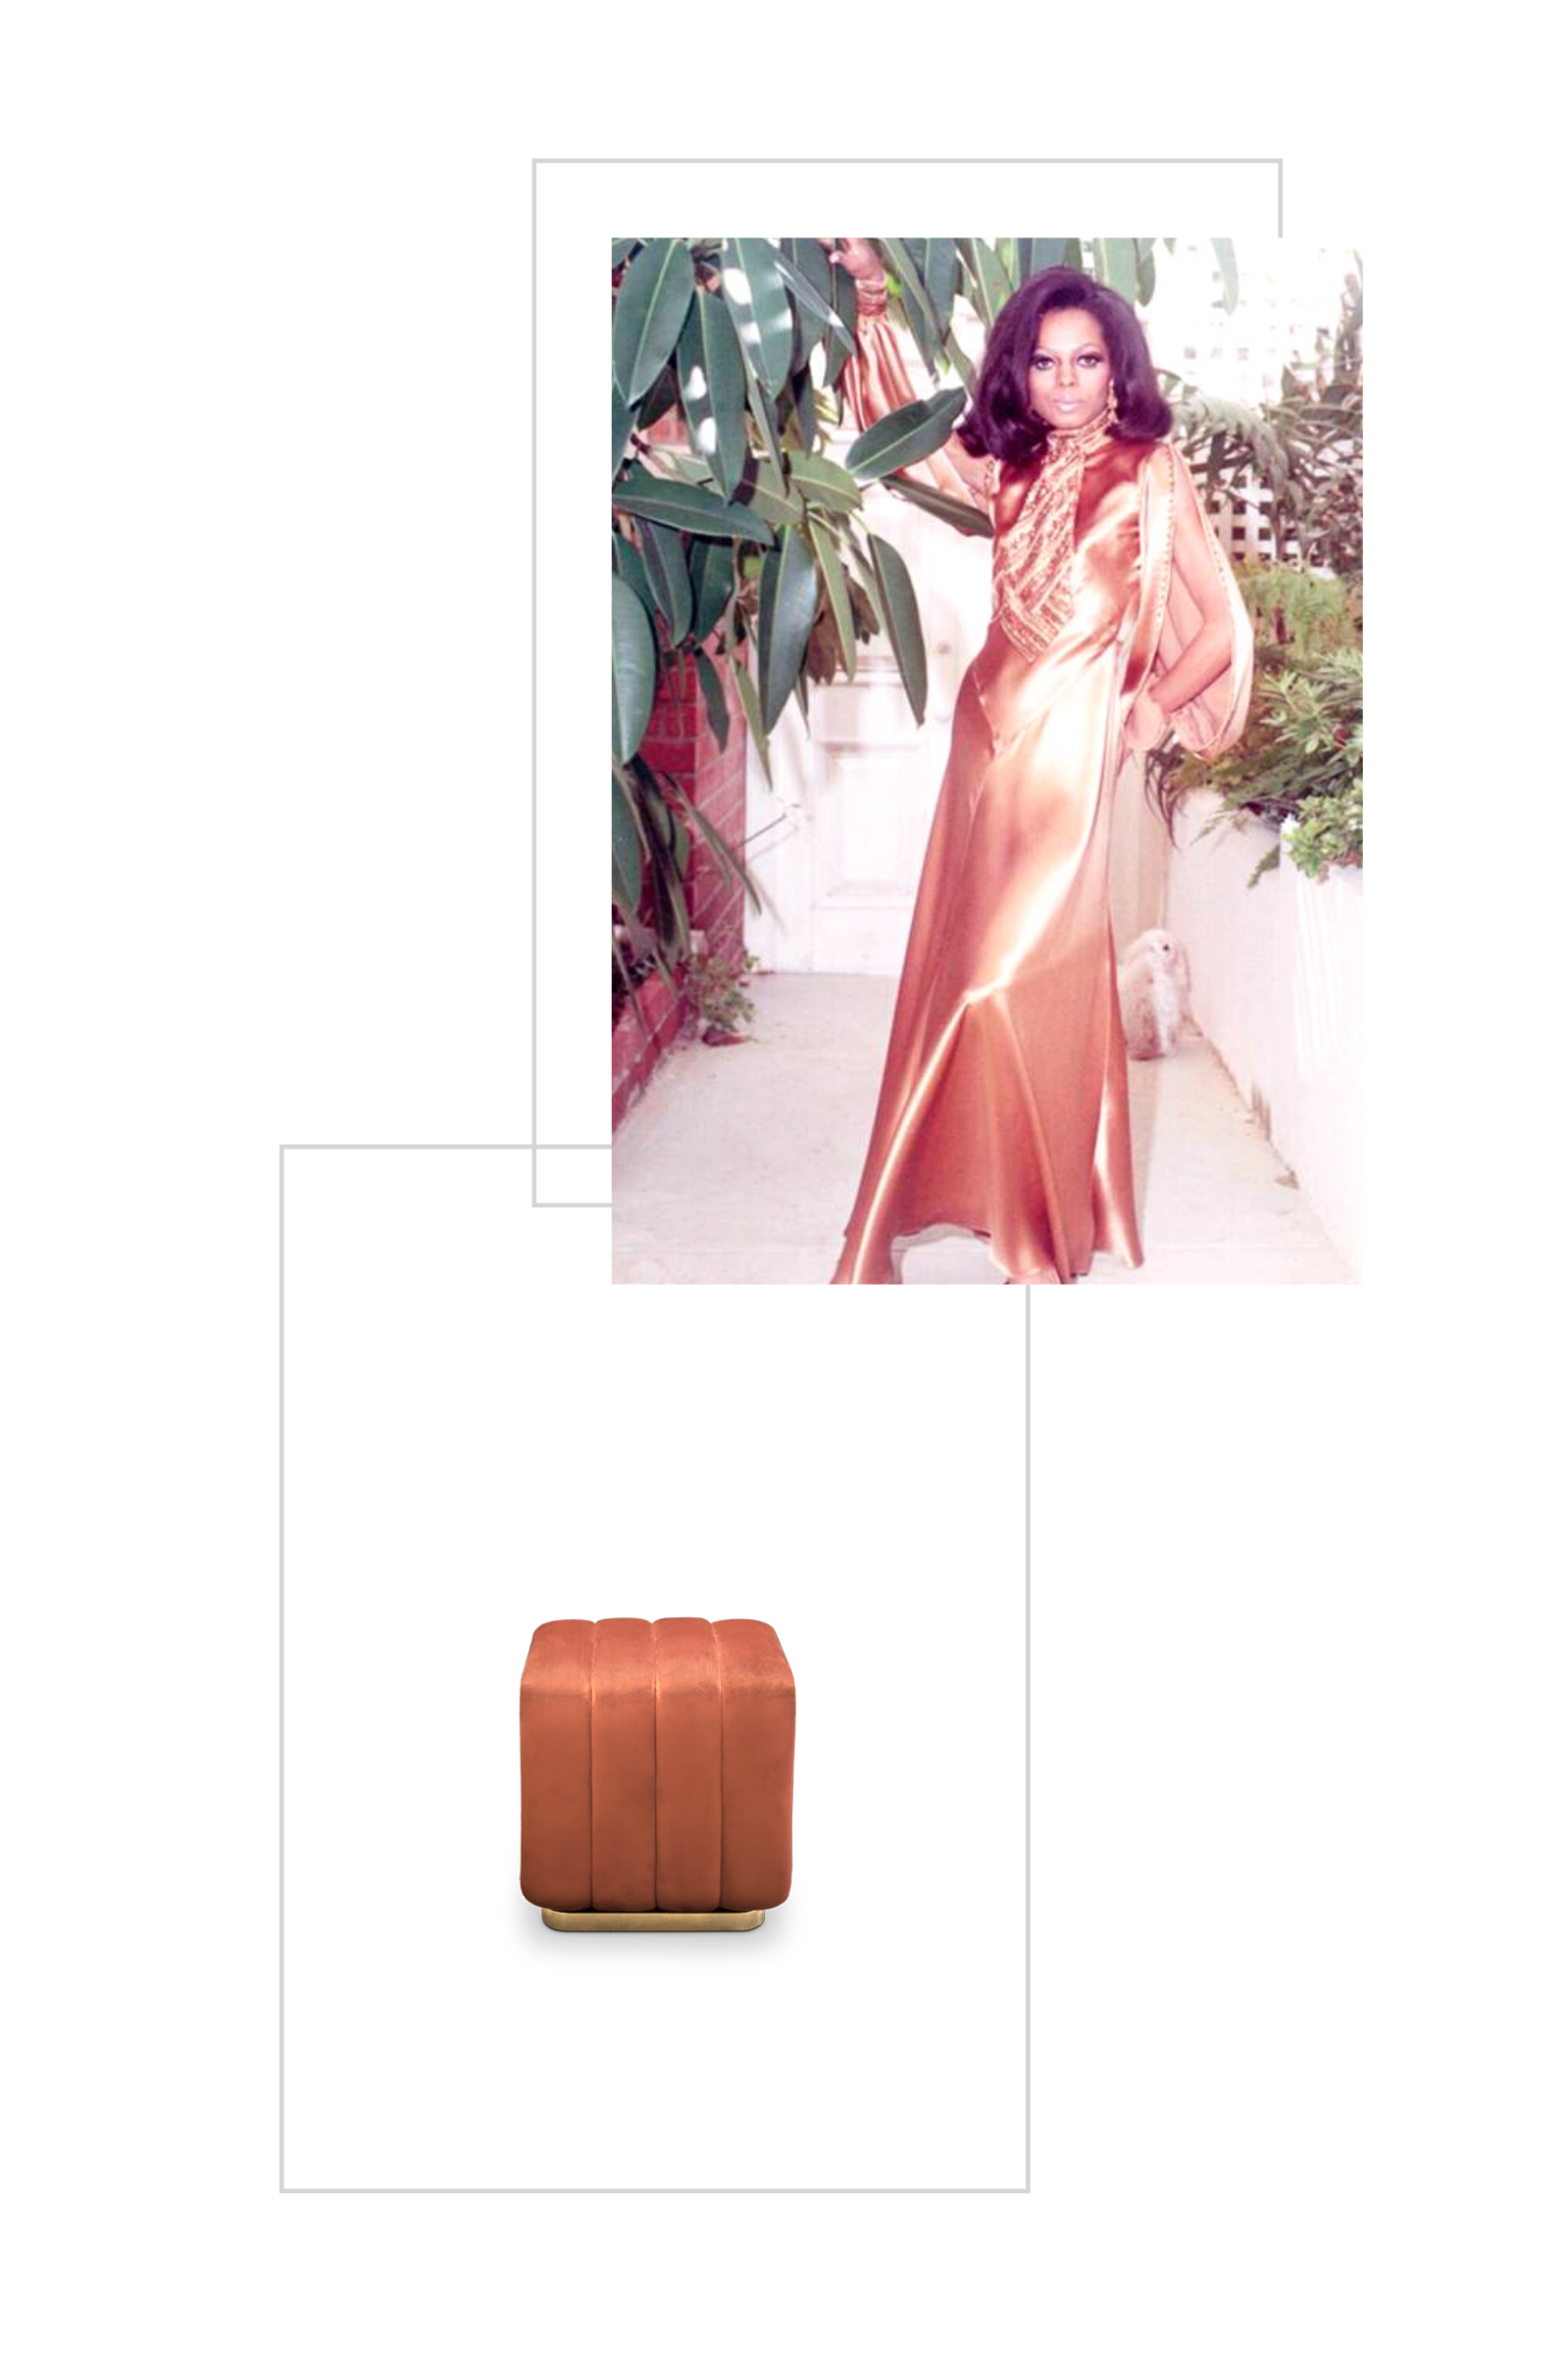 Vintage Style: Get Inspired By This Incredible Diana Ross OutfitsVintage Style: Get Inspired By This Incredible Diana Ross Outfits vintage style Vintage Style: Get Inspired By This Incredible Diana Ross Outfits Design sem nome 2